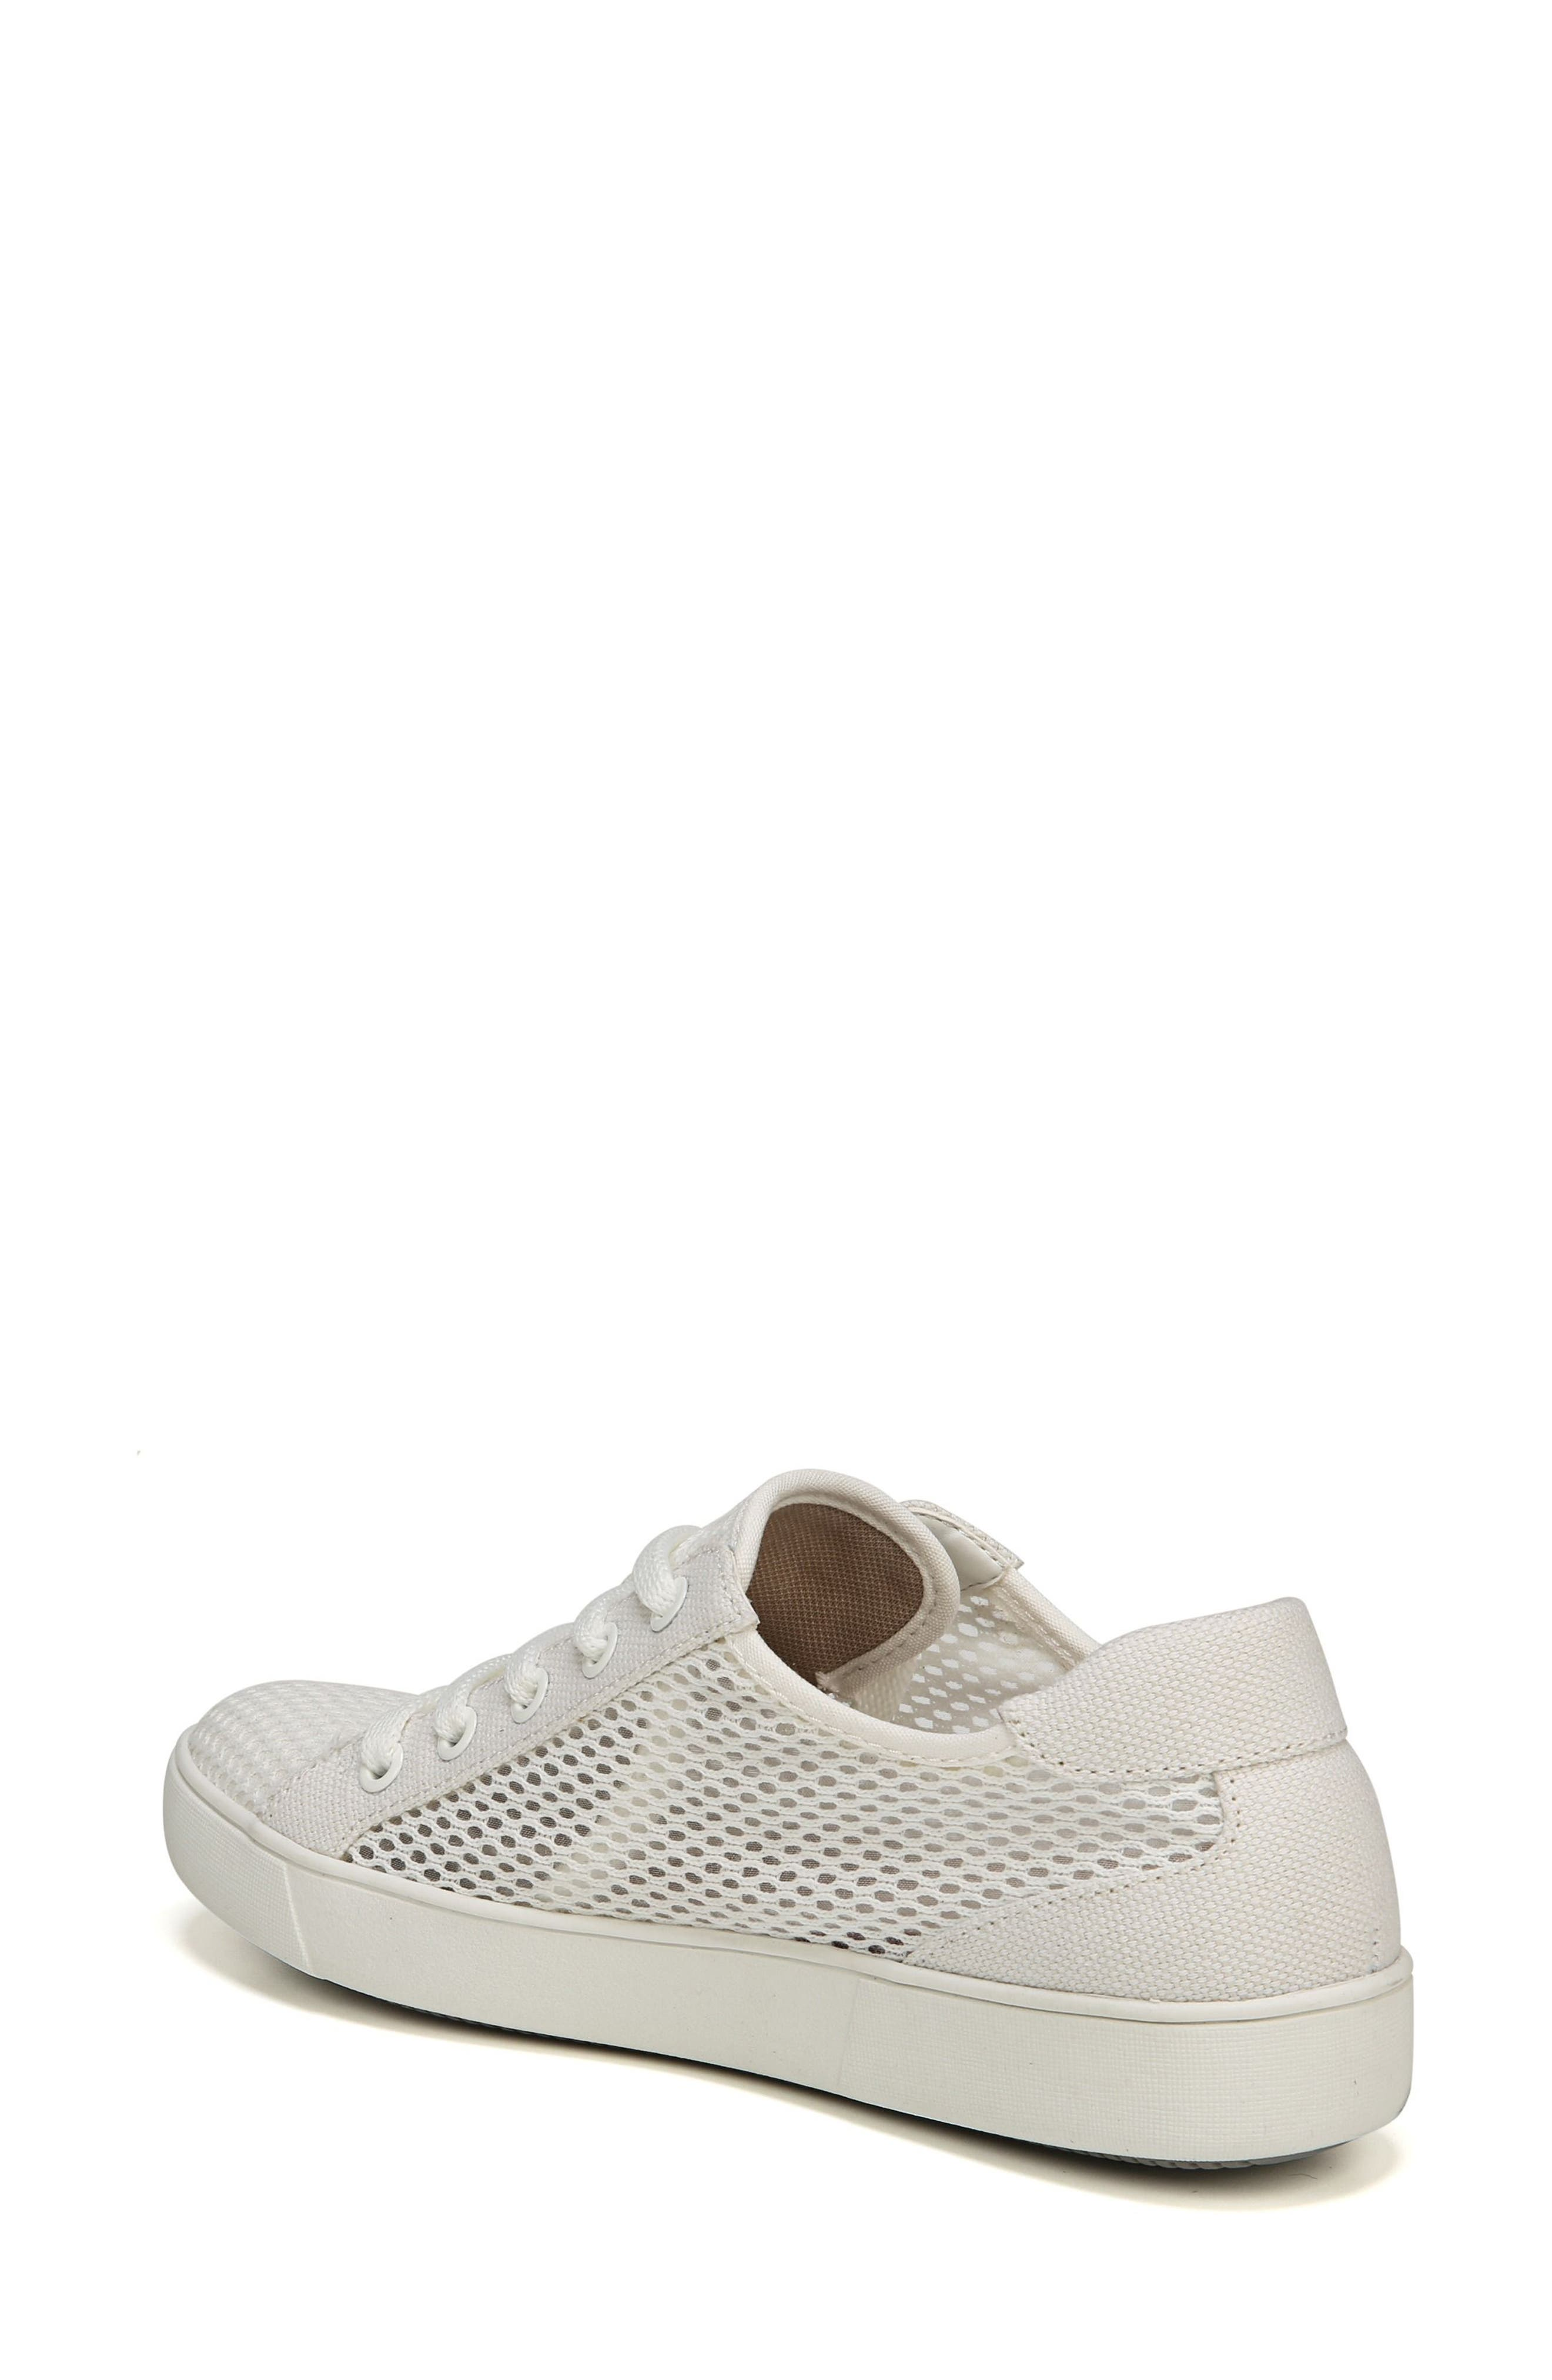 NATURALIZER, Morrison III Perforated Sneaker, Alternate thumbnail 2, color, WHITE FABRIC